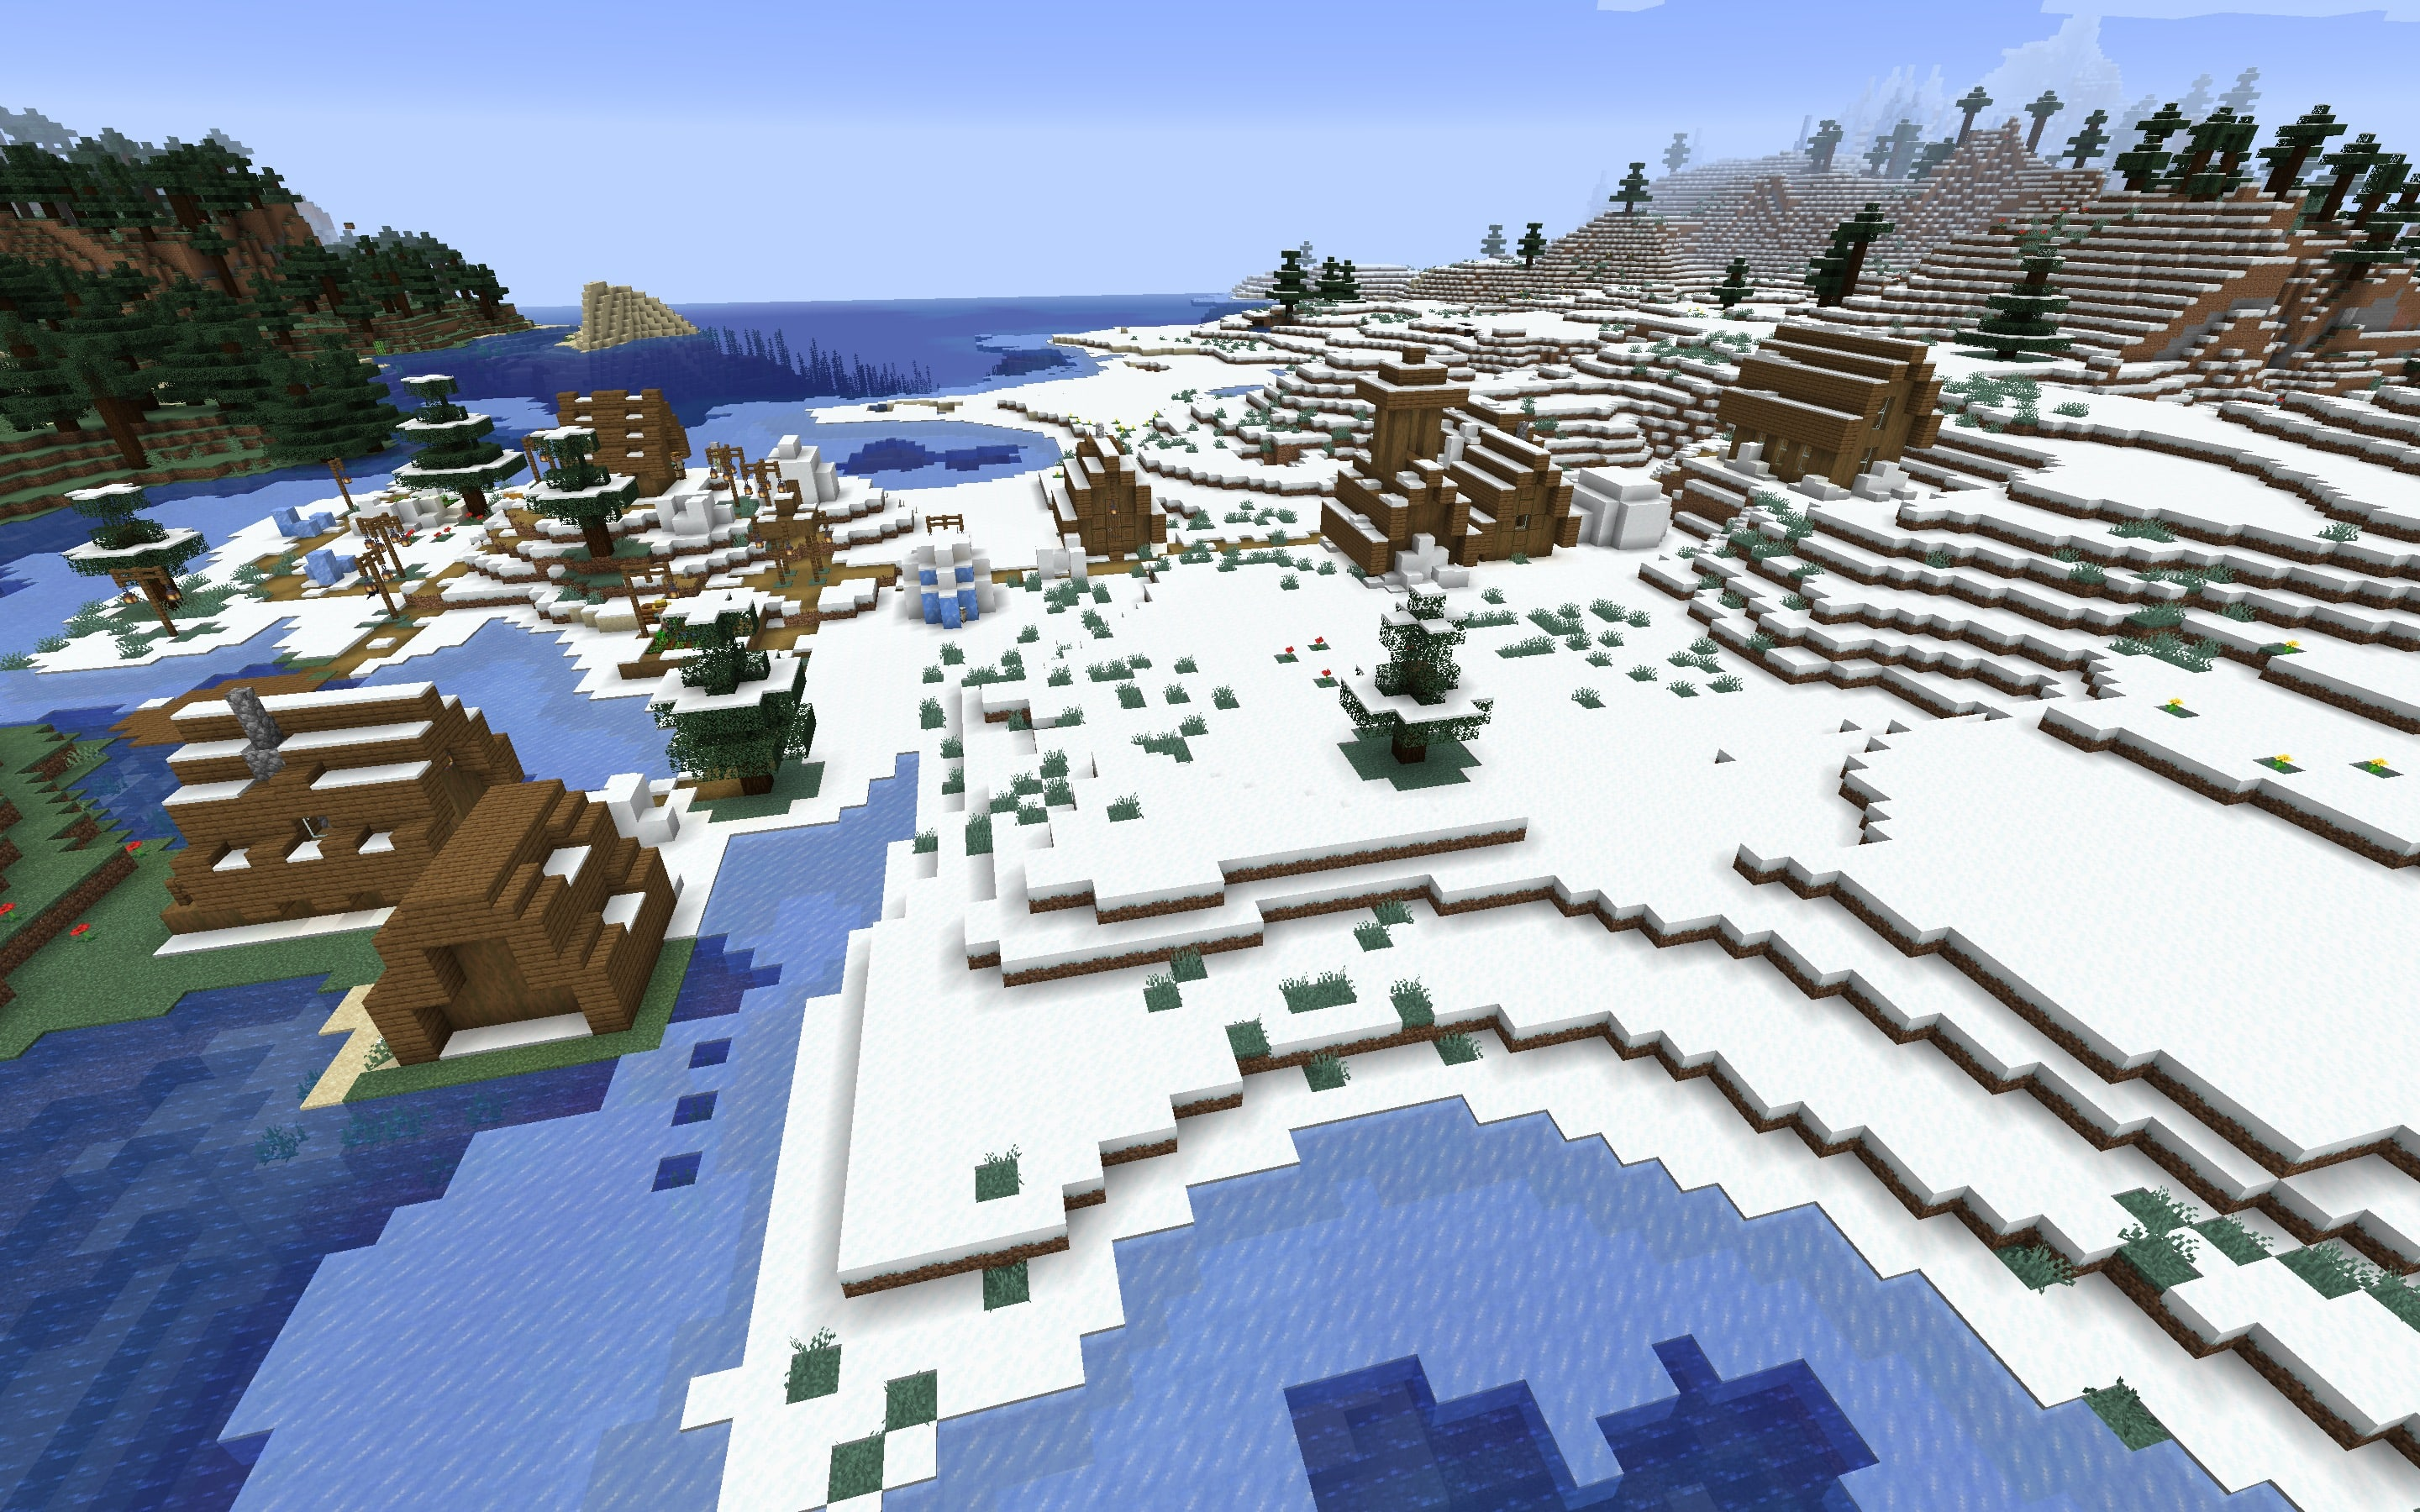 Snow Village Minecraft Seed for 1.14